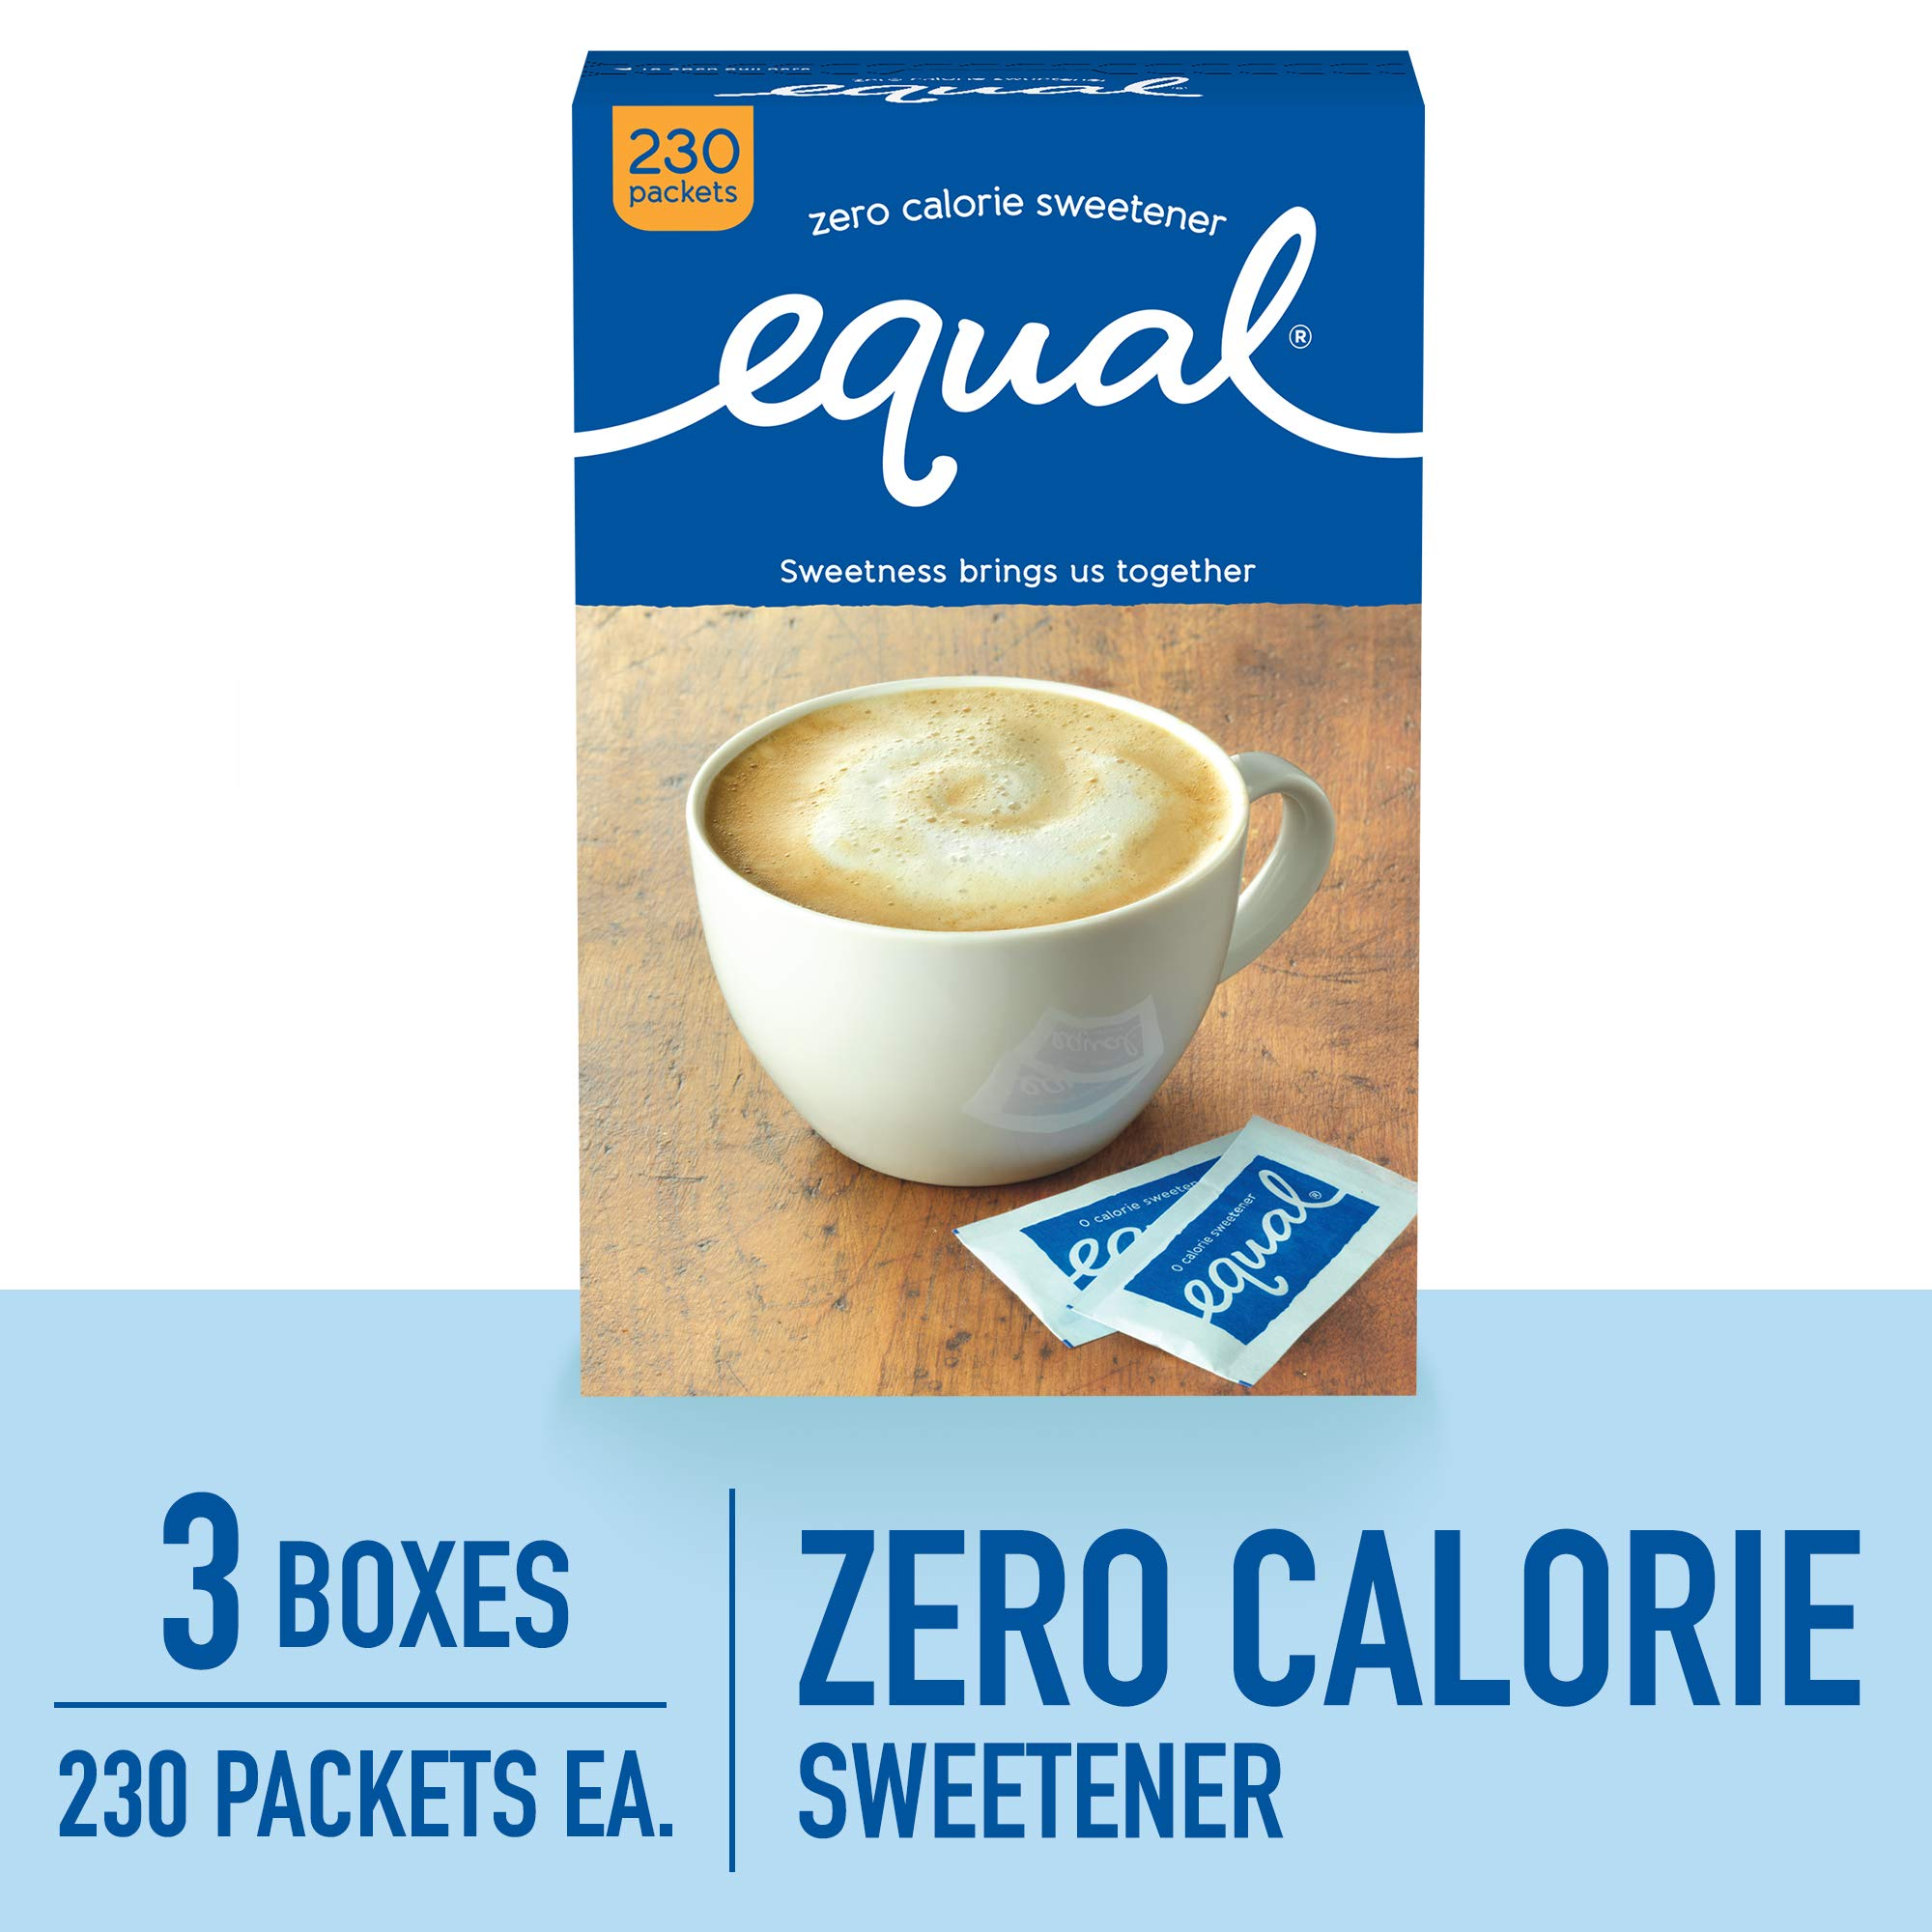 EQUAL 0 Calorie Sweetener, Sugar Substitute, Zero Calorie Sugar Alternative Sweetener Packets, Sugar Alternative, 230 Count (Pack of 3) by Equal (Image #1)